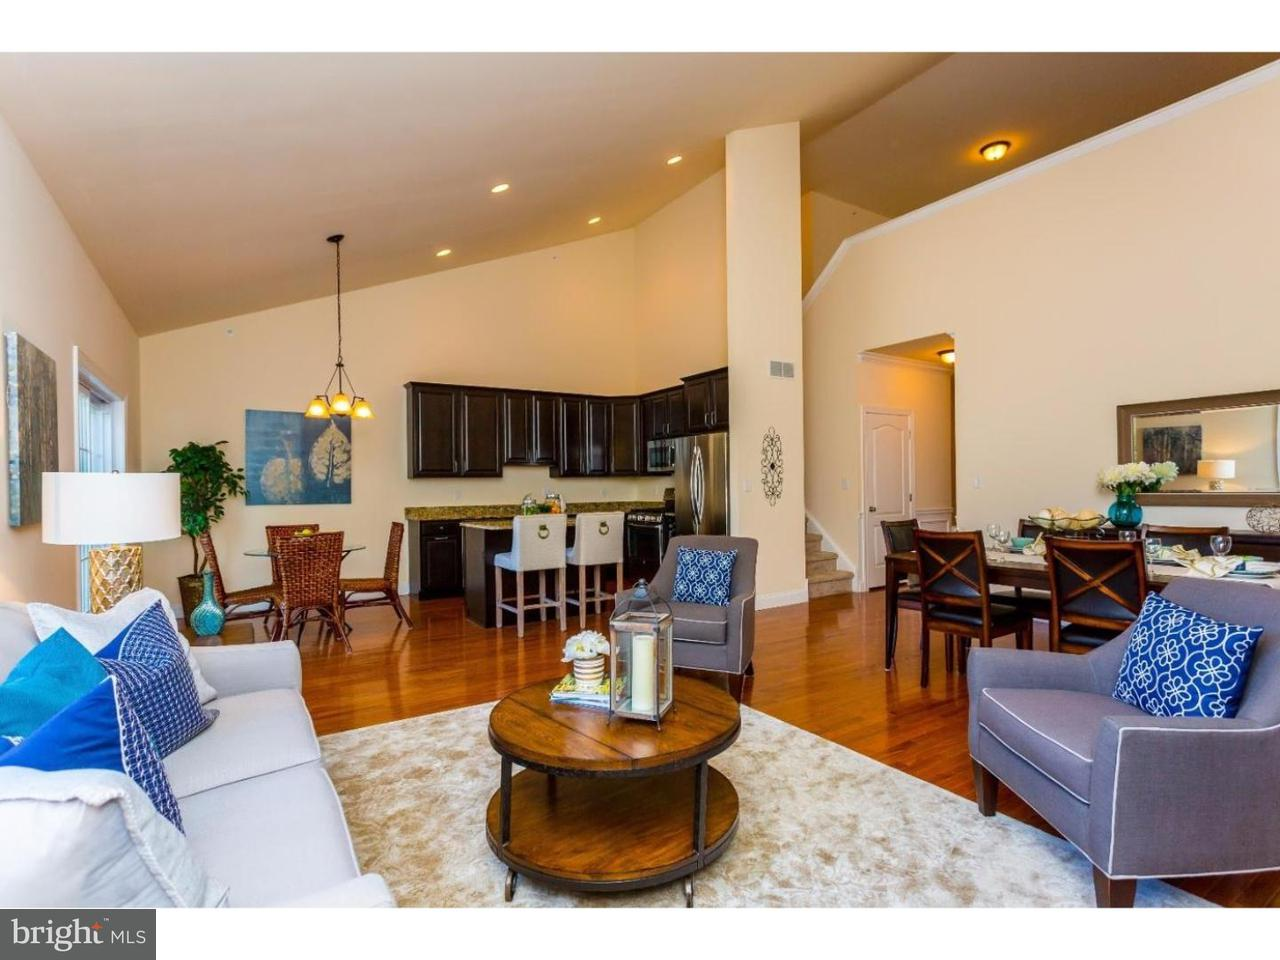 Townhouse for Sale at 1010 VILLAGE WAY Upper Chichester, Pennsylvania 19061 United States